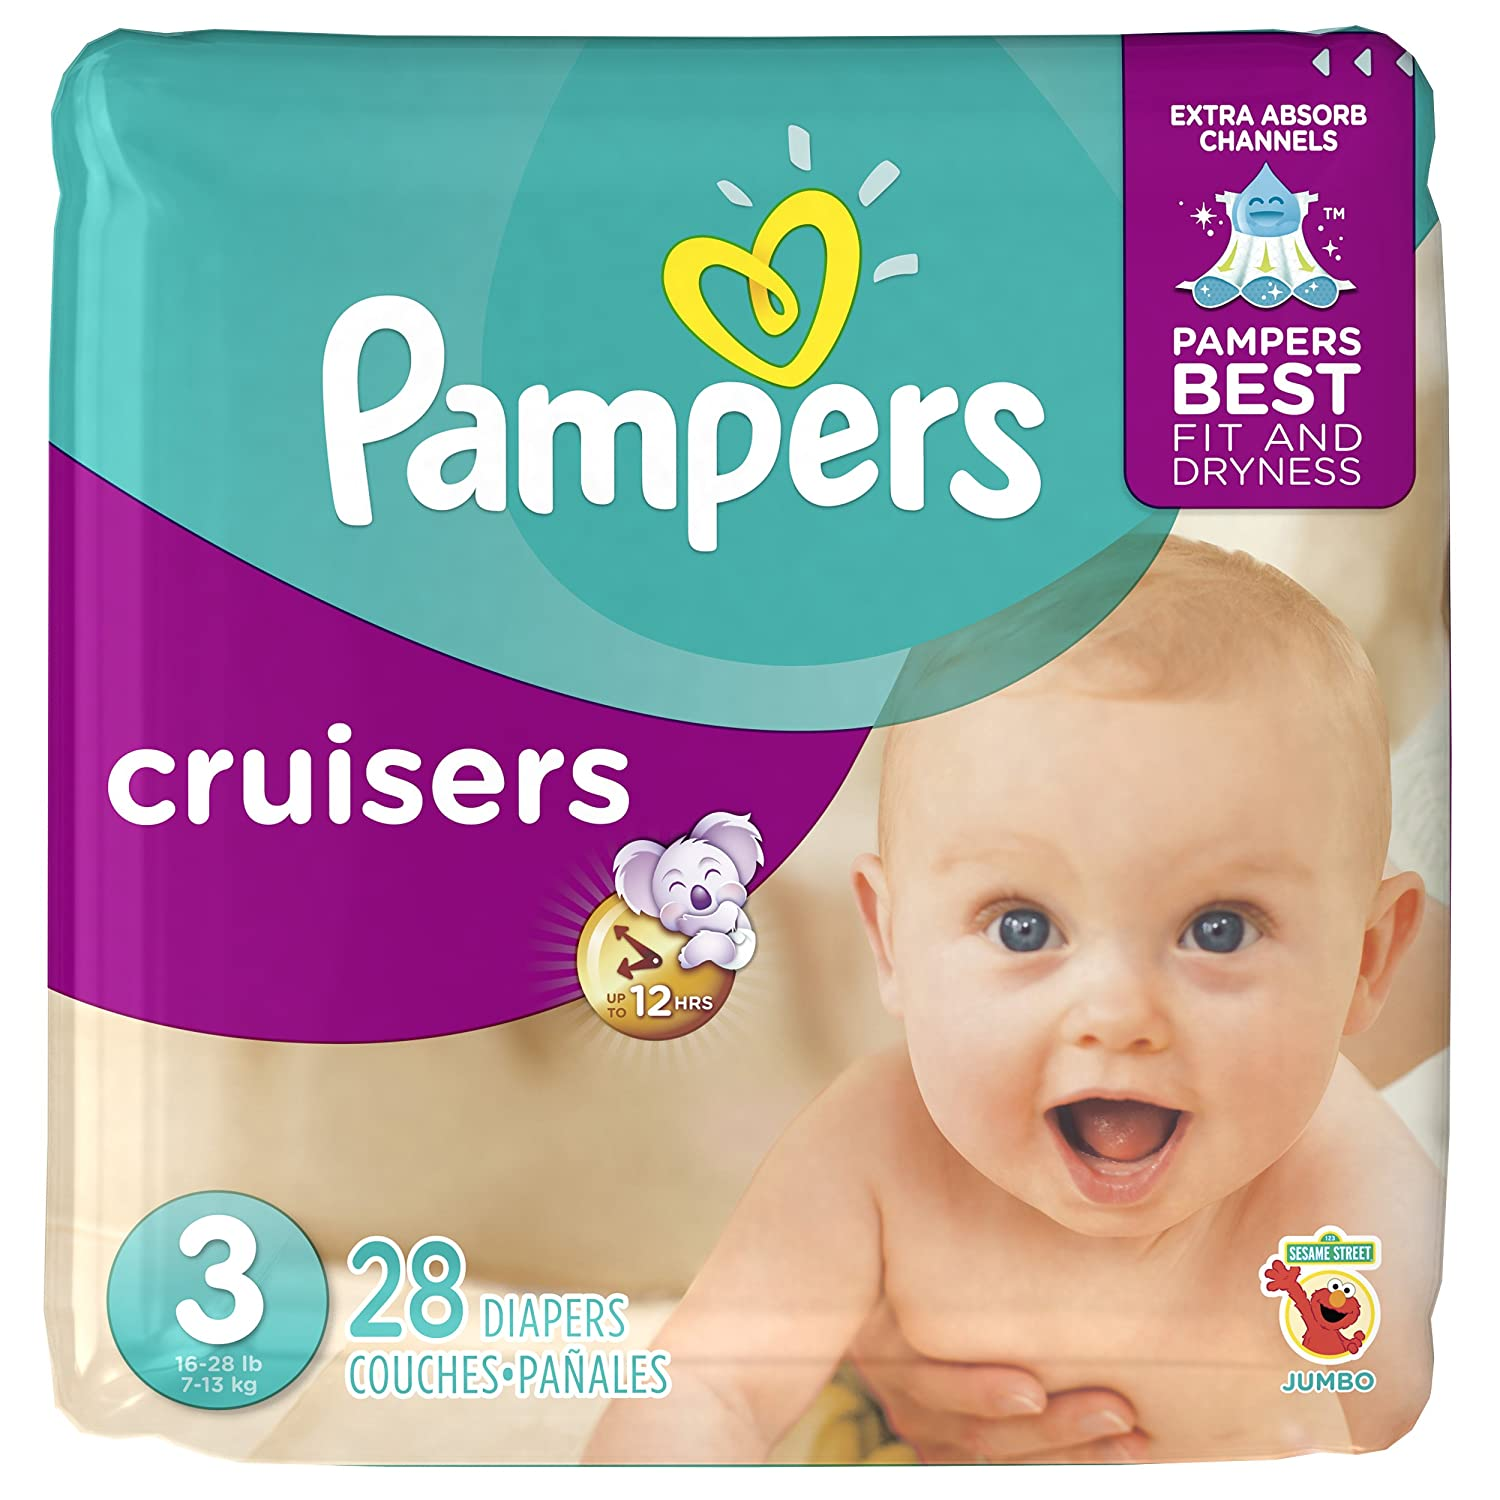 Pampers Cruisers Diapers Size 3, 28 Count